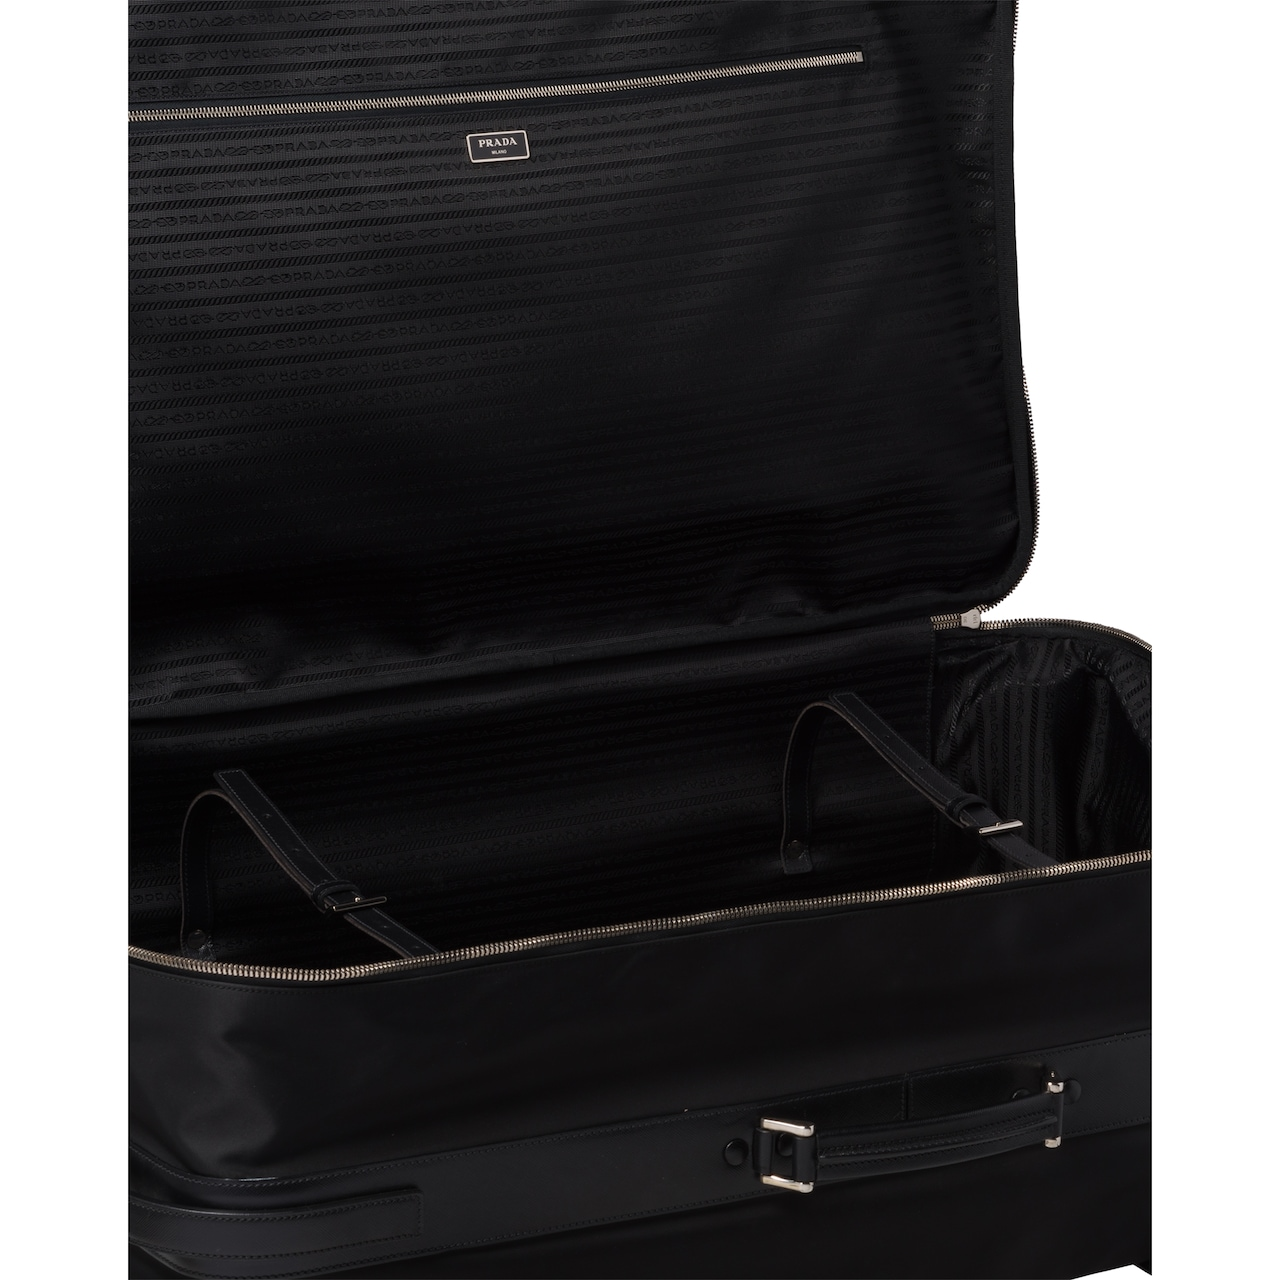 Prada Nylon Semi-Rigid Suitcase 5